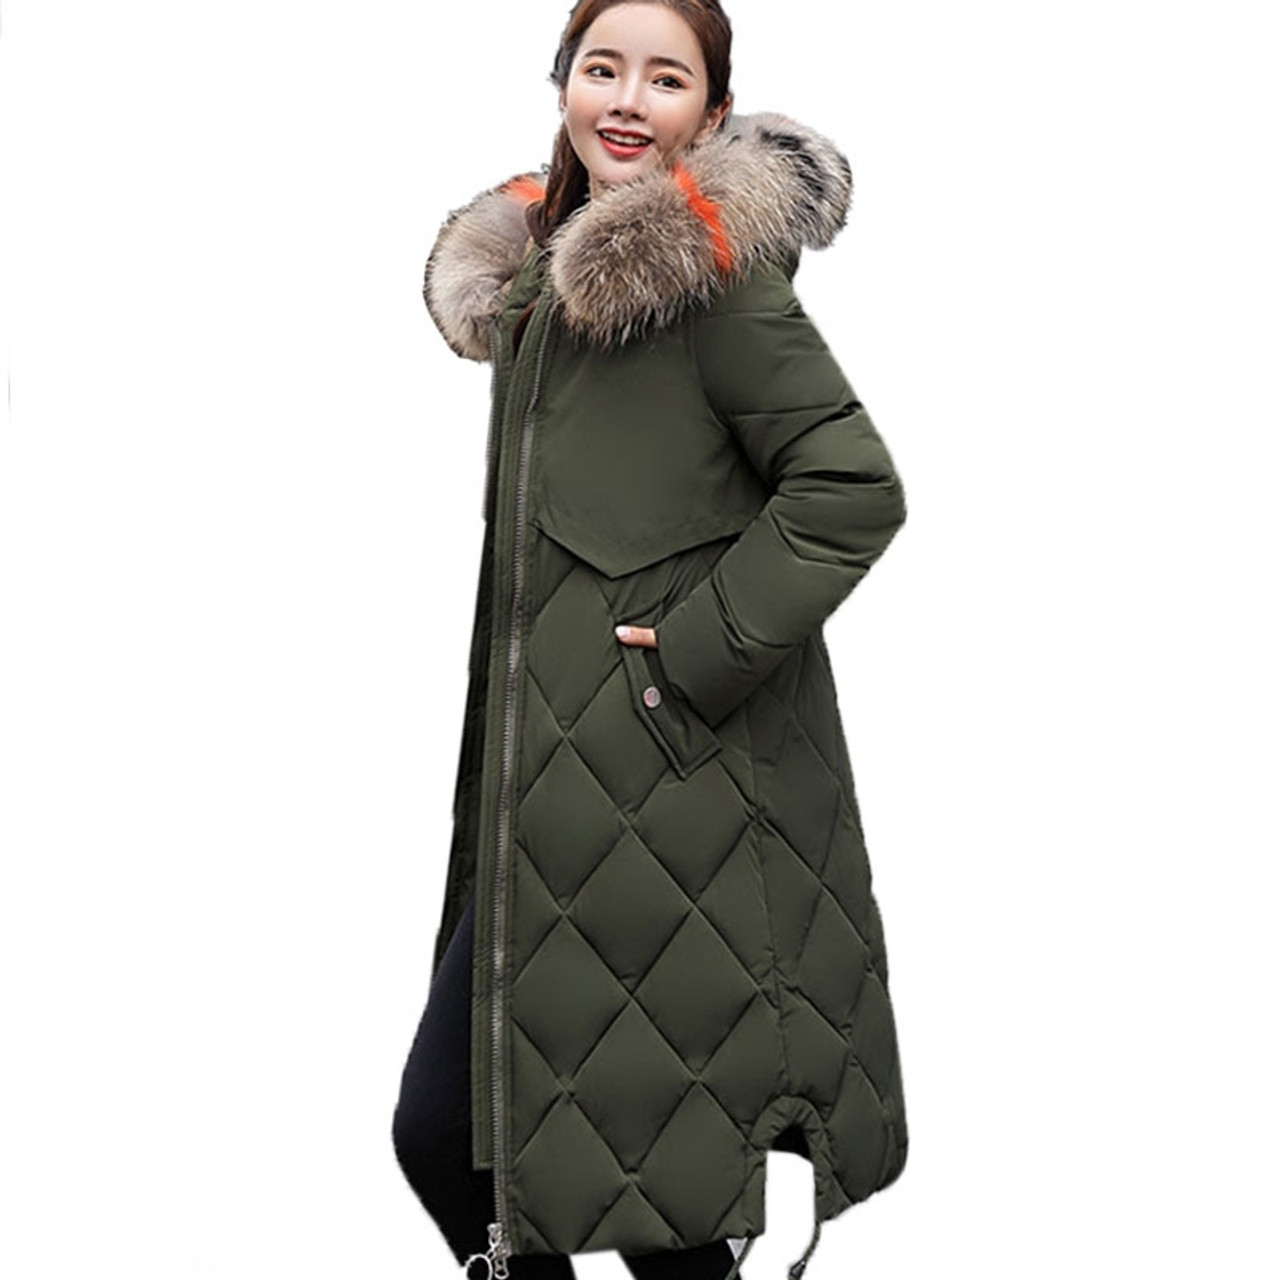 f27d86a9faceb ... Plus Size Winter Women Jacket Coat Big Fur Hooded Warm Winter Parka  Jackets Long Thicken Down ...